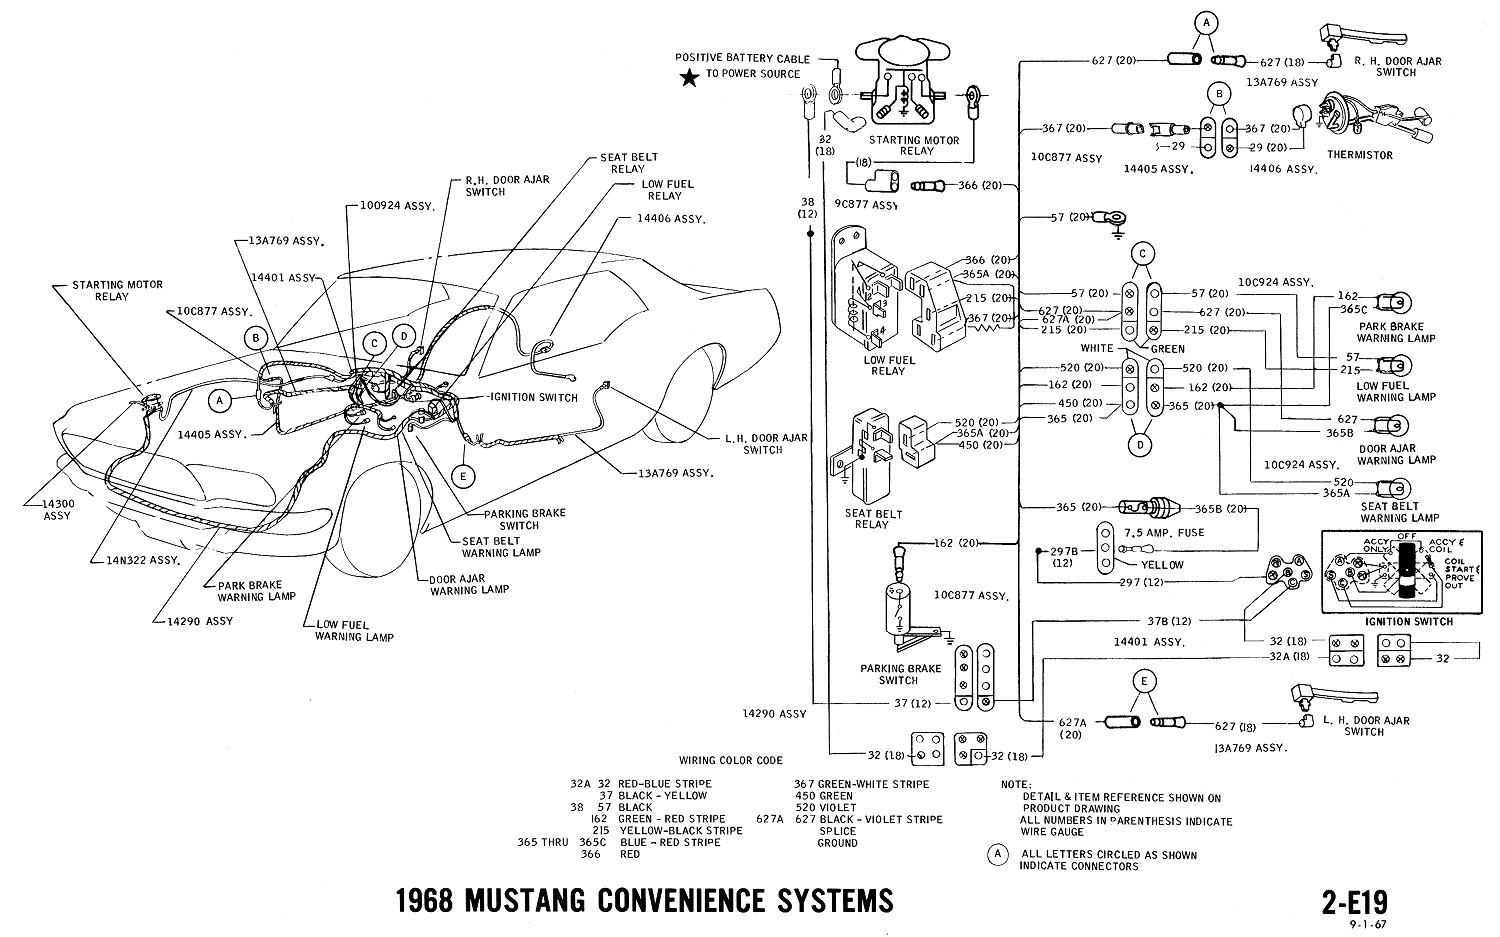 Wrg Light Switch Wiring Diagram Mustang